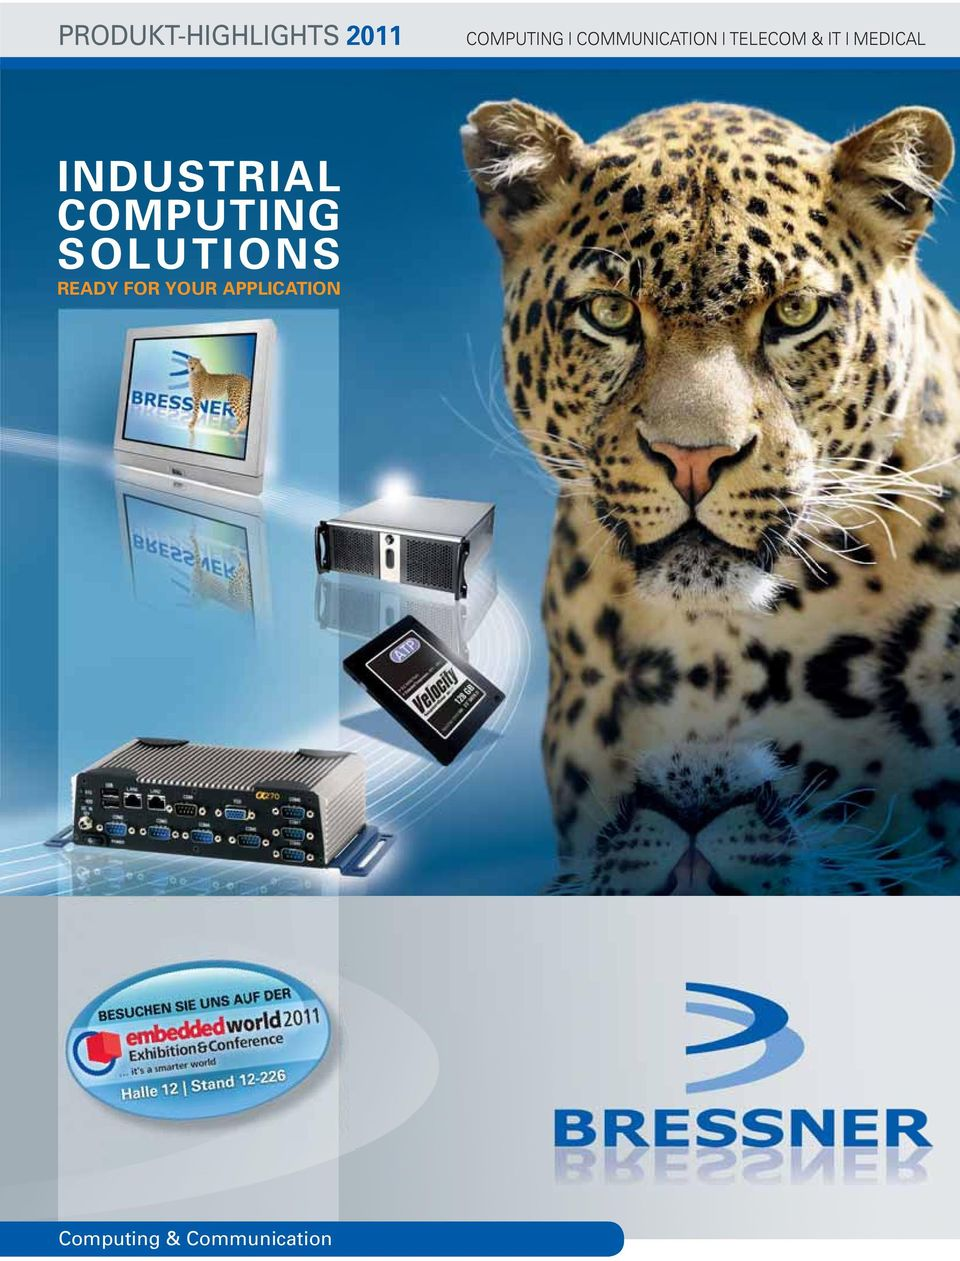 INDUSTRIAL COMPUTING SOLUTIONS READY